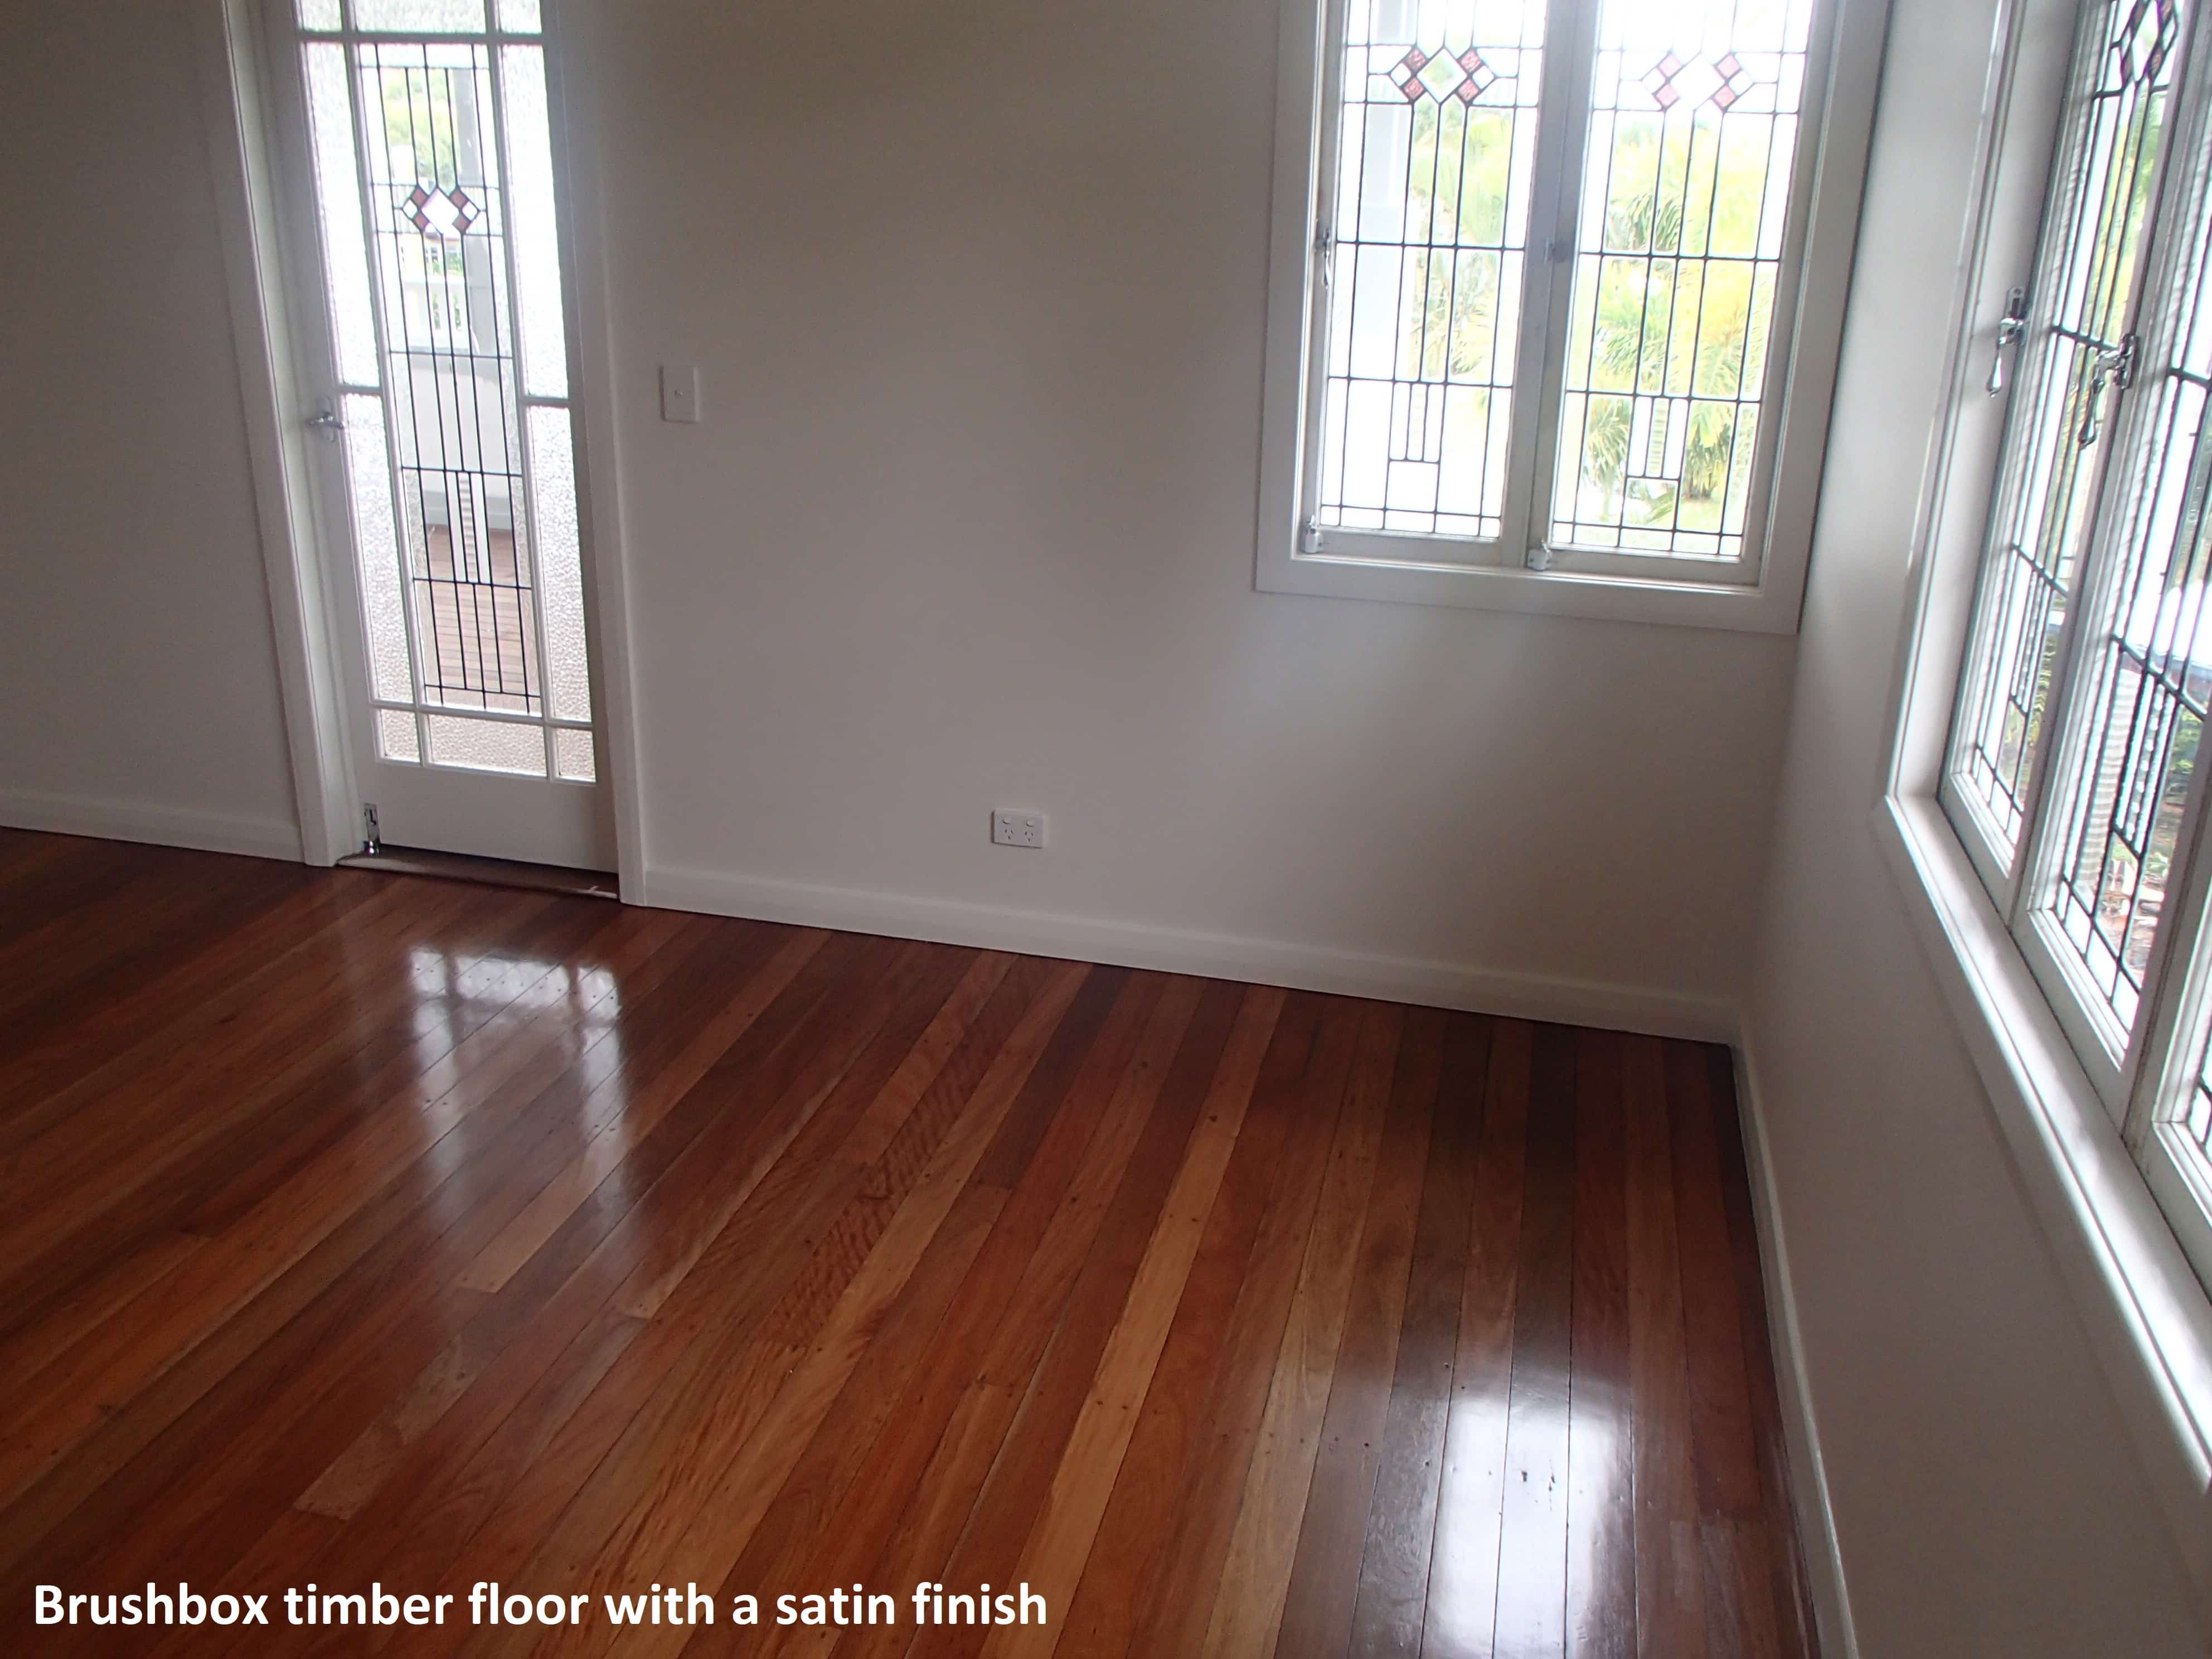 Brushbox timber floor